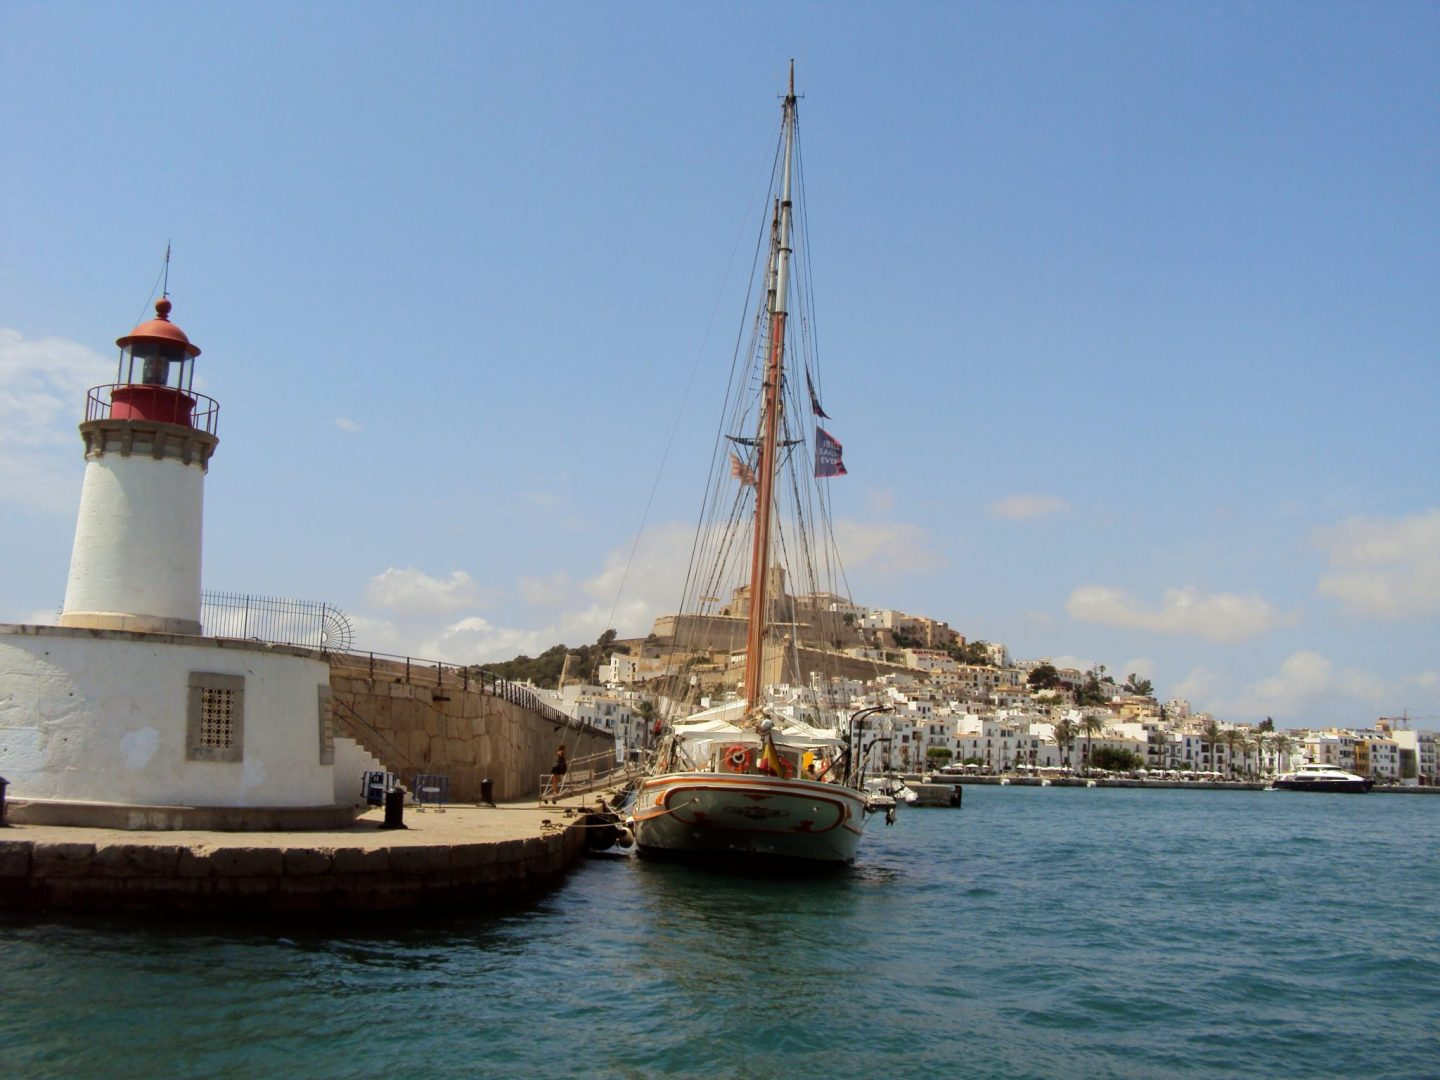 Views across Ibiza Town from the Pacha 67 sailboat